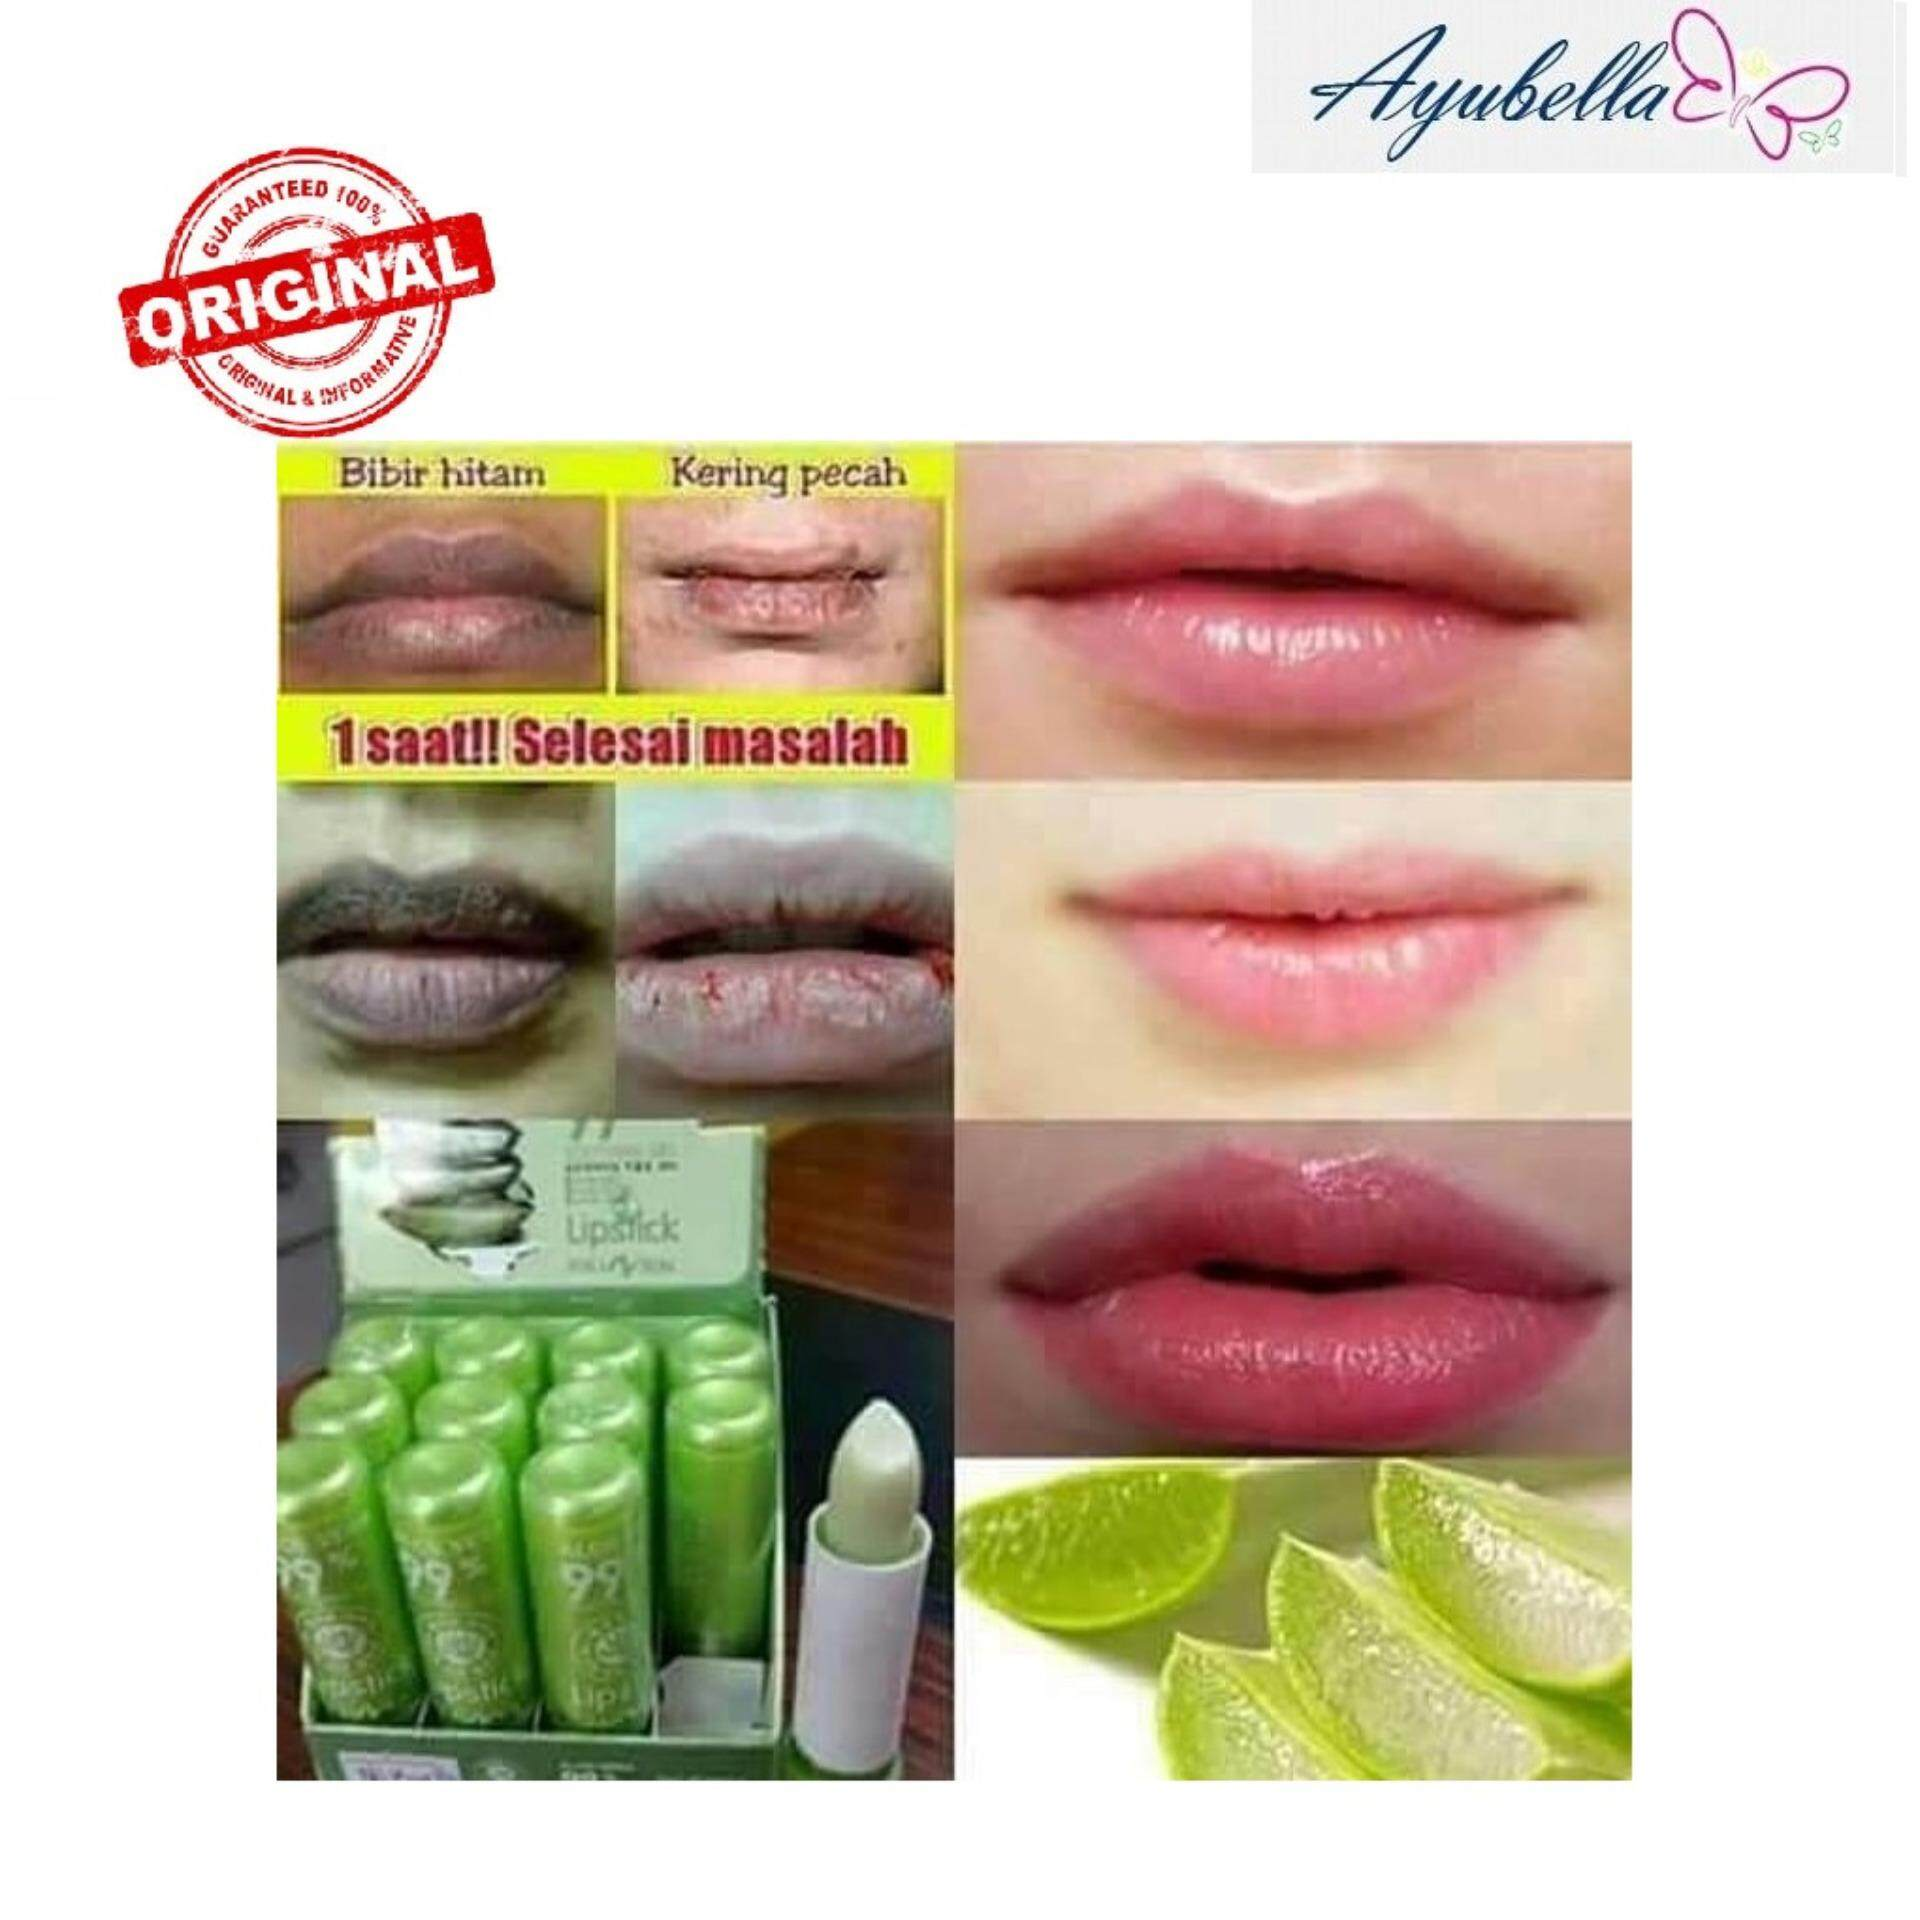 Kiss Beauty 99% Aloe Vera Soothing Gel Moisturizing Lipsitck 3.5g x 2